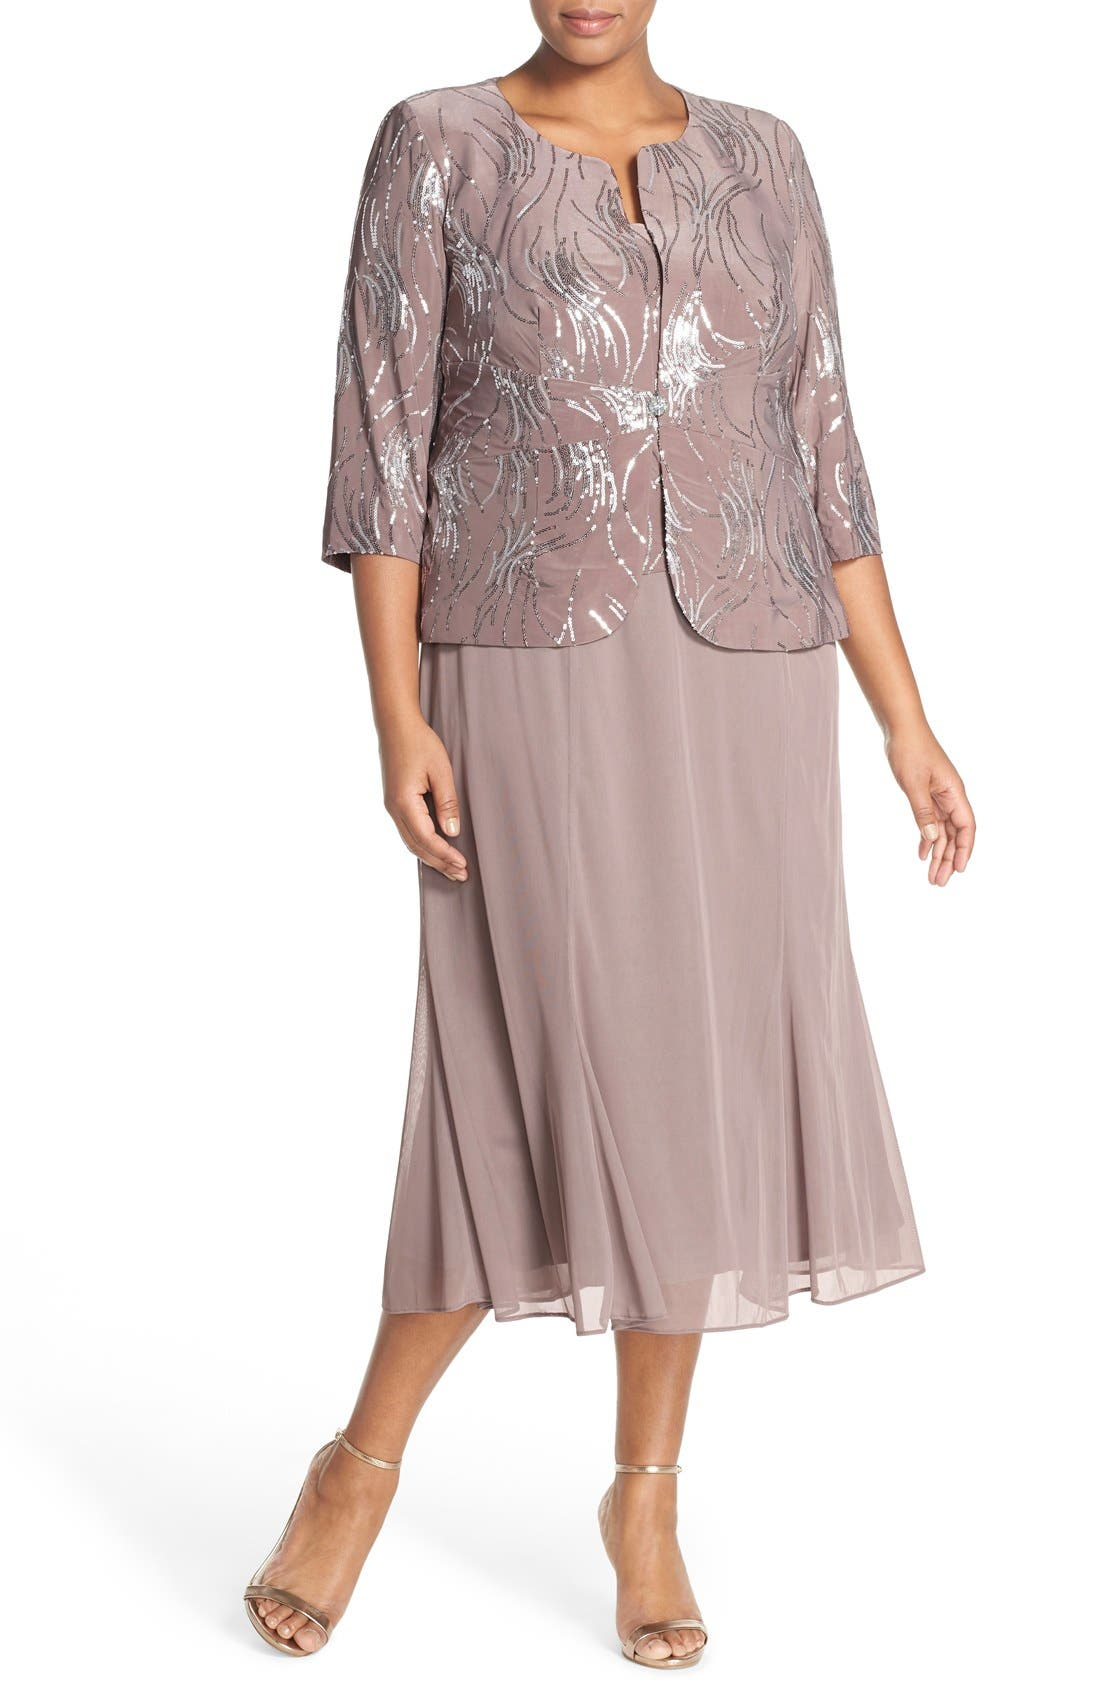 Main Image - Alex Evenings Sequin Mock Two-Piece Dress with Jacket (Plus Size)